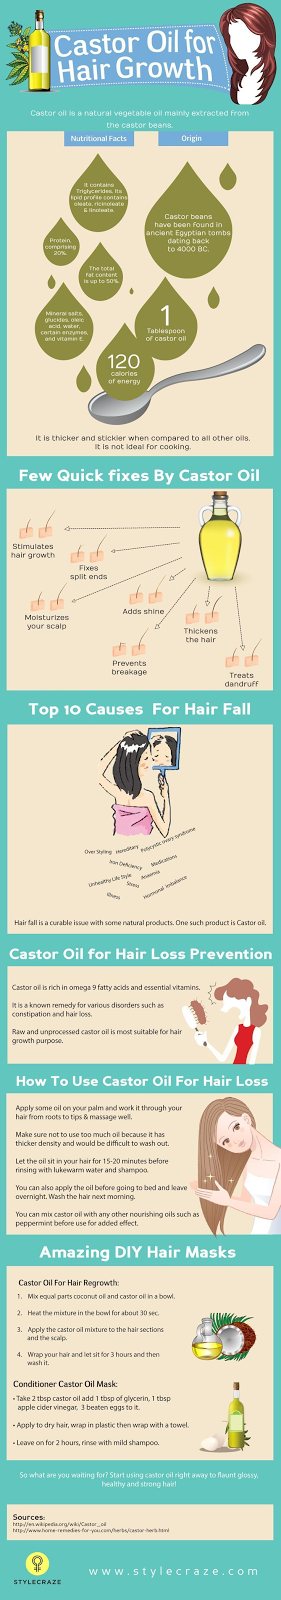 Castor Oil for Hair Growth